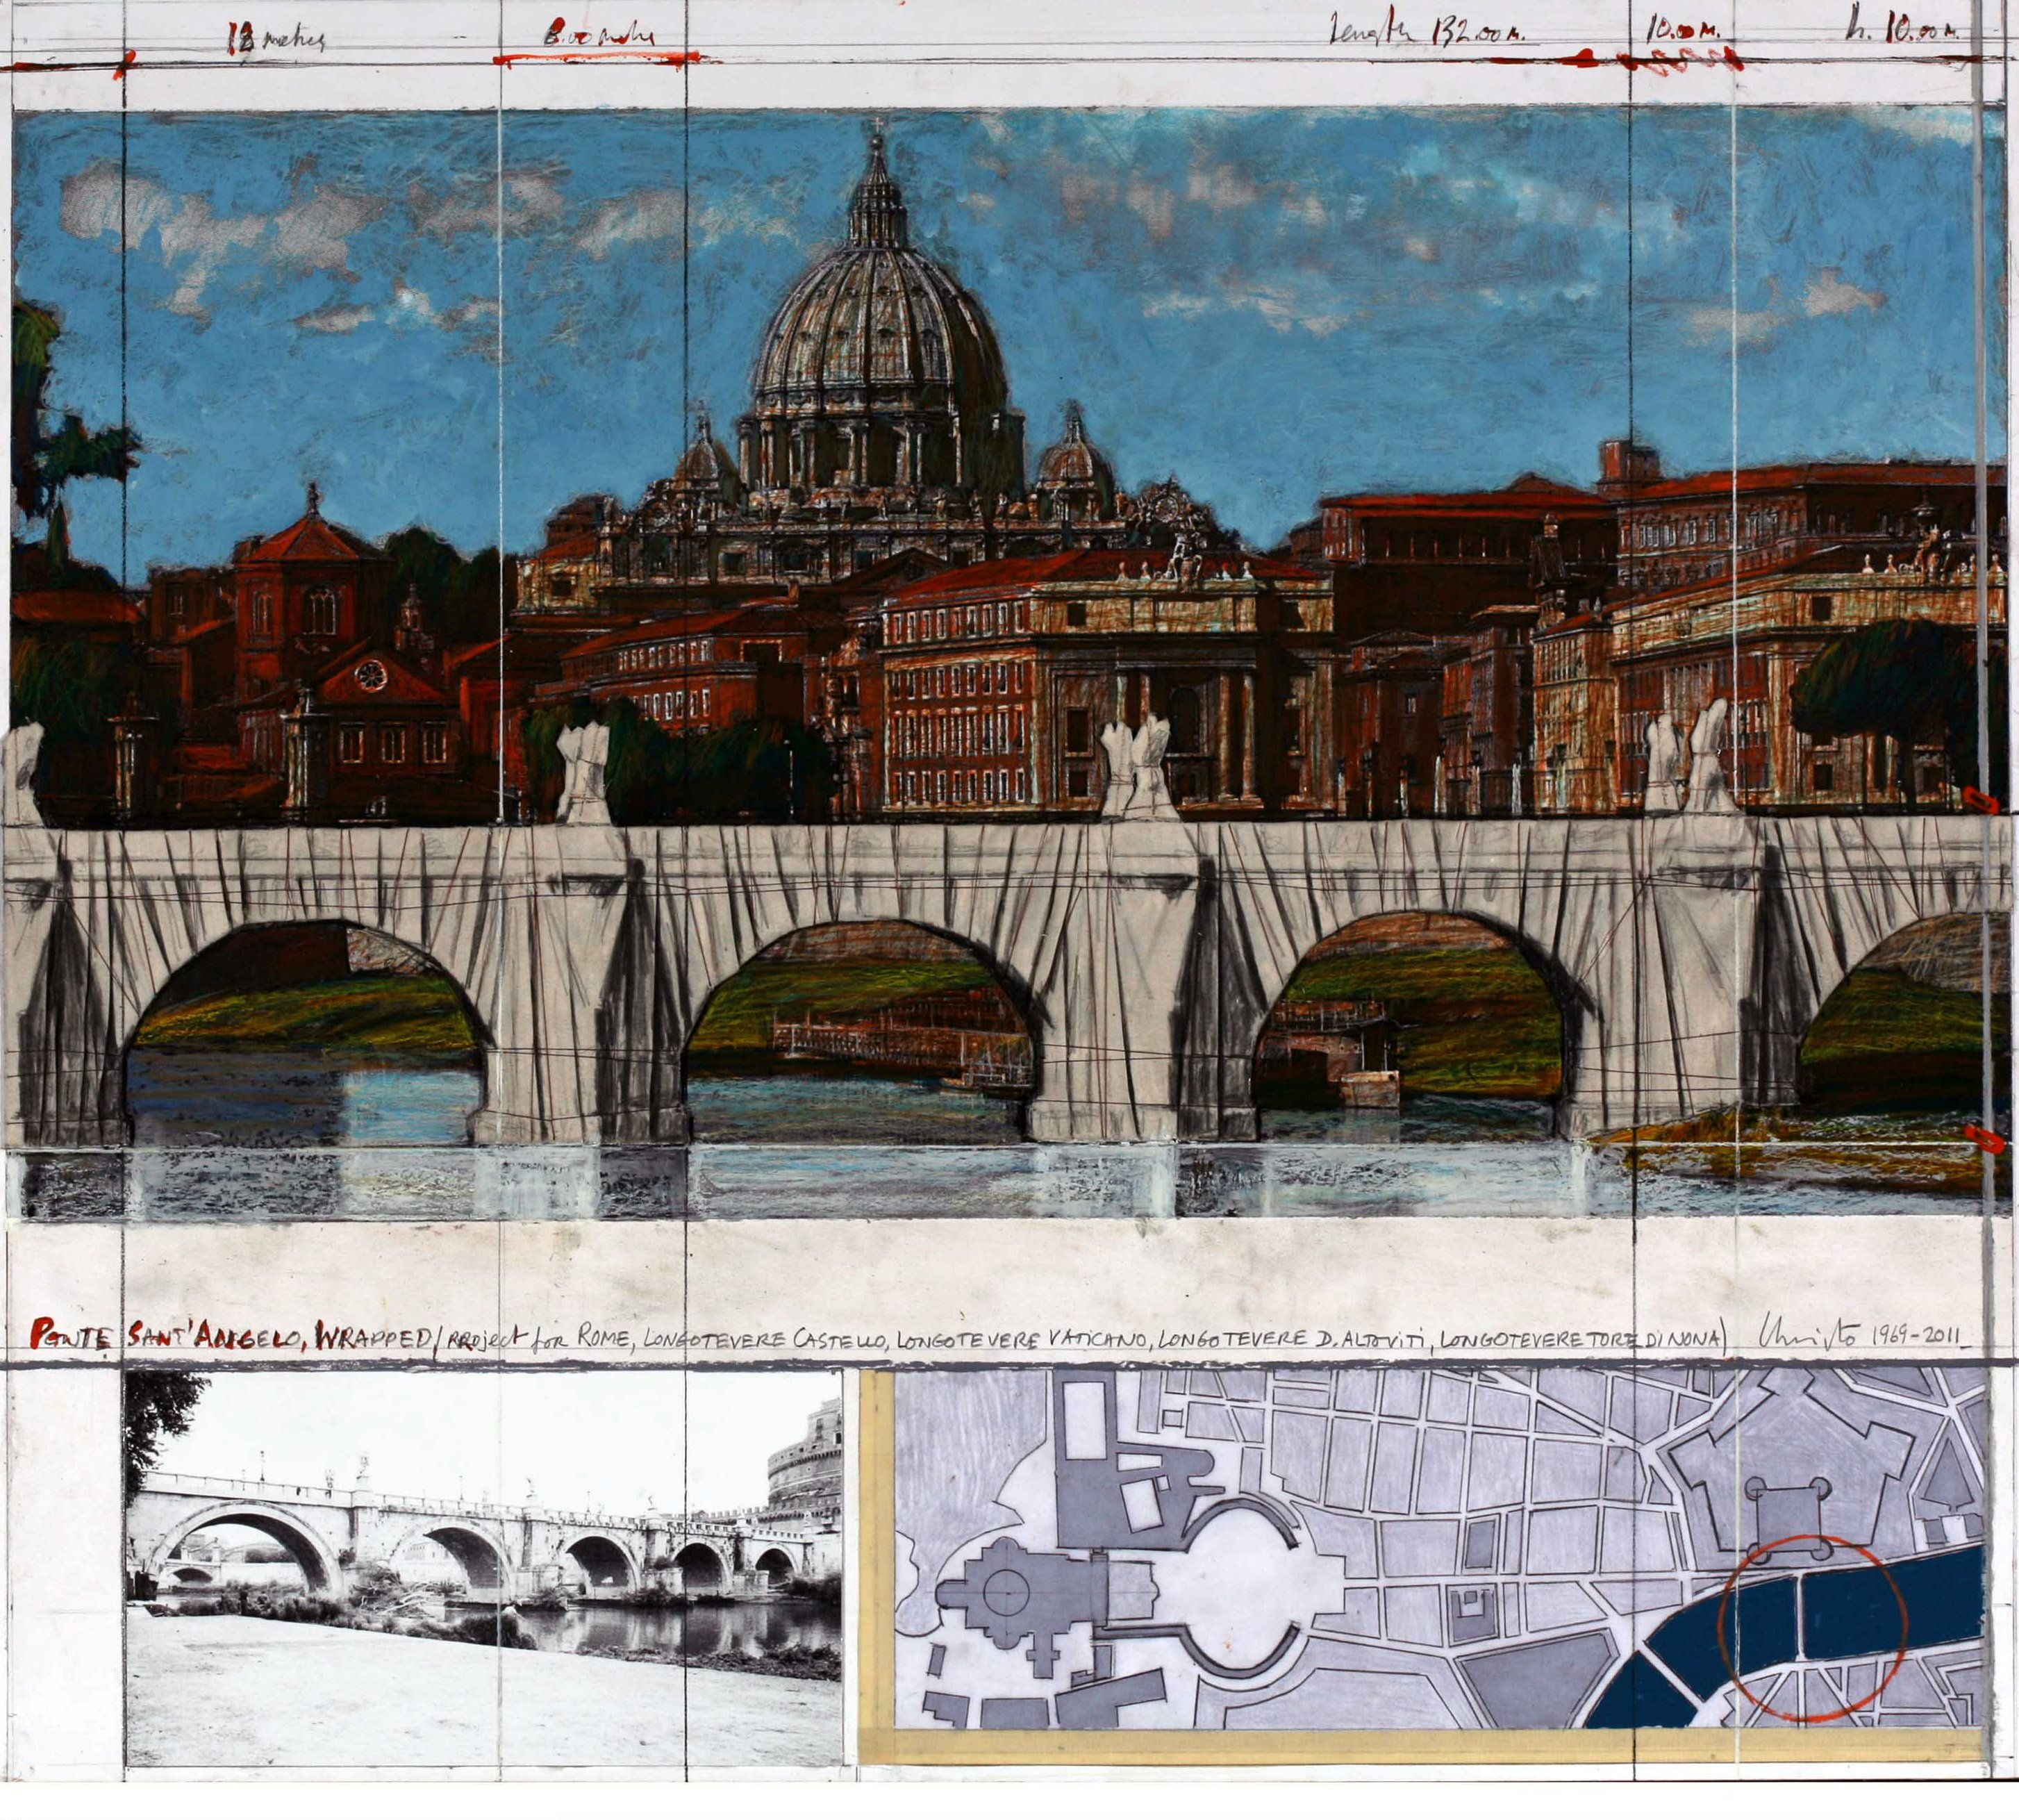 Ponte Sant Angelo, Wrapped – Project for Rome